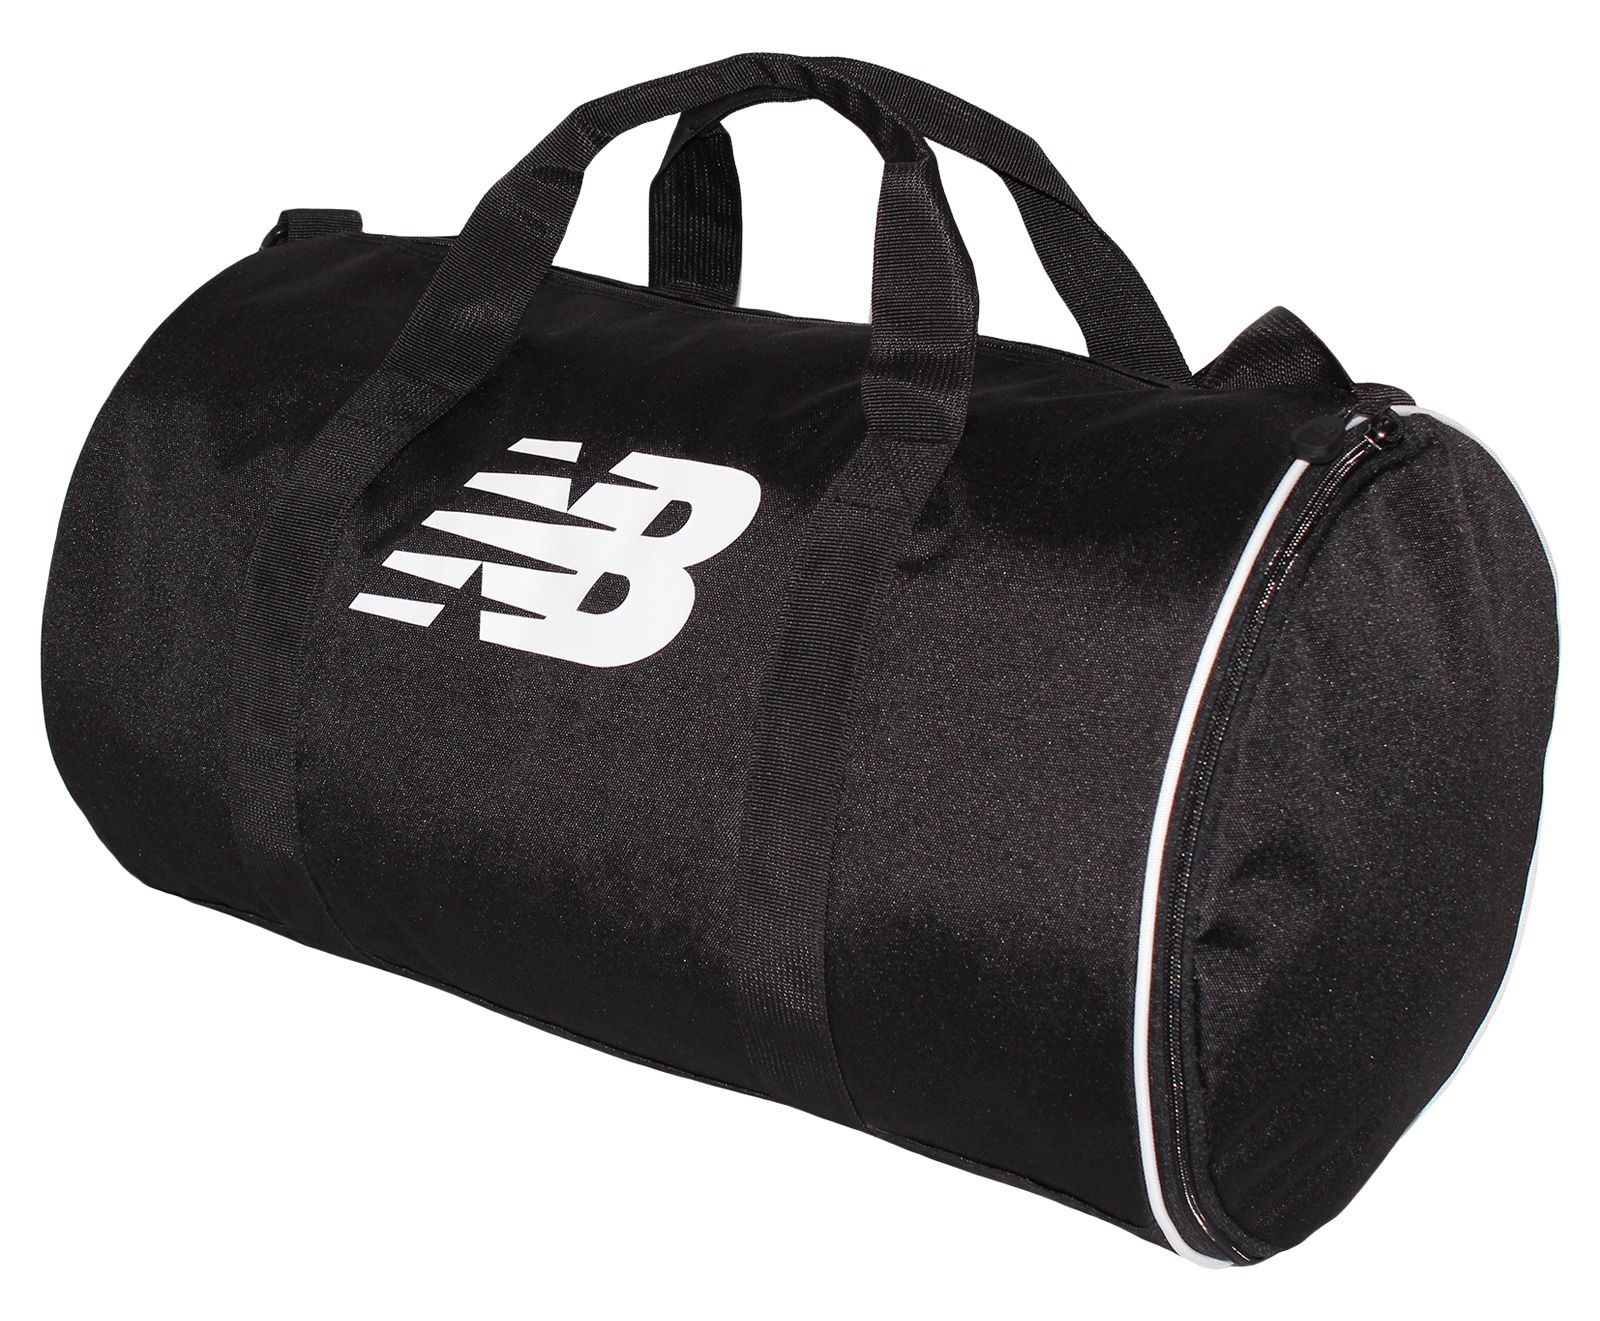 NB Barrel Duffle, Black